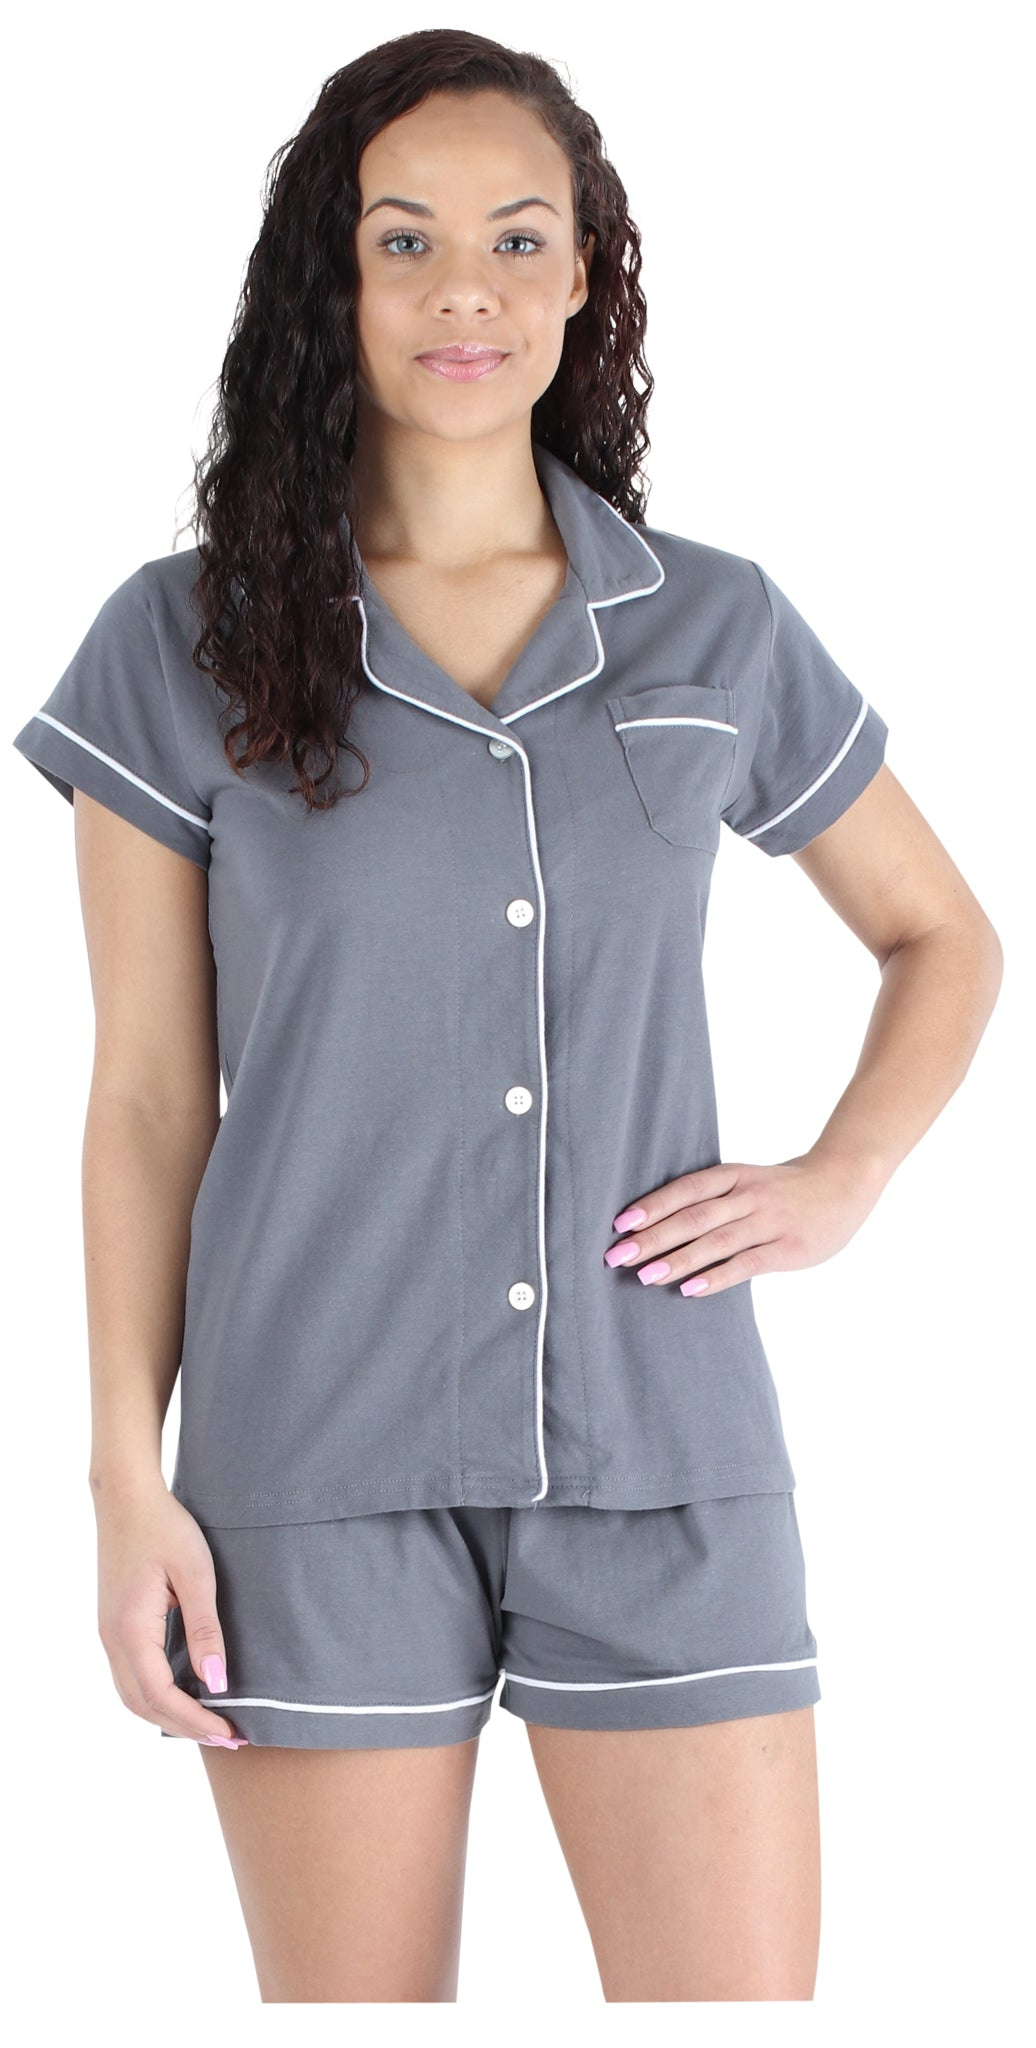 Women's Stretchy Jersey Button Up Top and Shorts Pajama Set